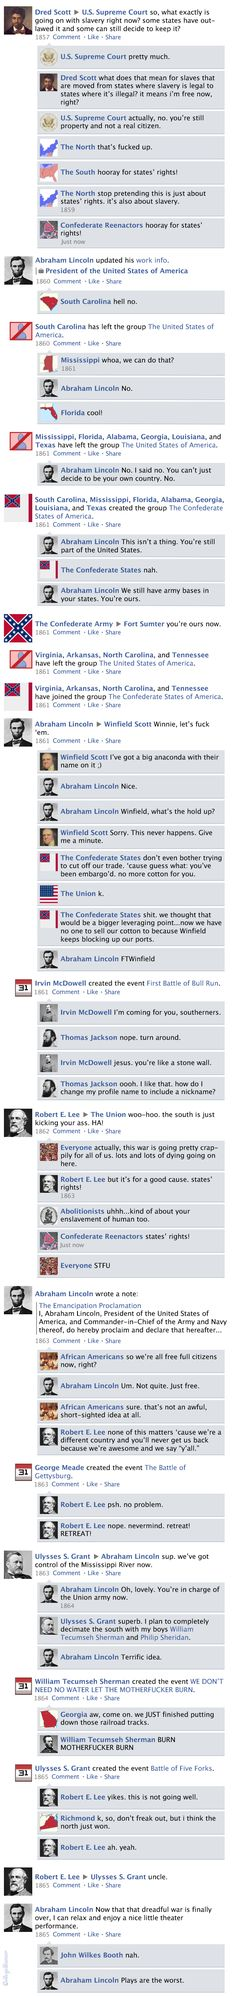 """Facebook Timeline History of the U.S. Civil War    """"k, so, don't freak out, but i think the north just won."""""""